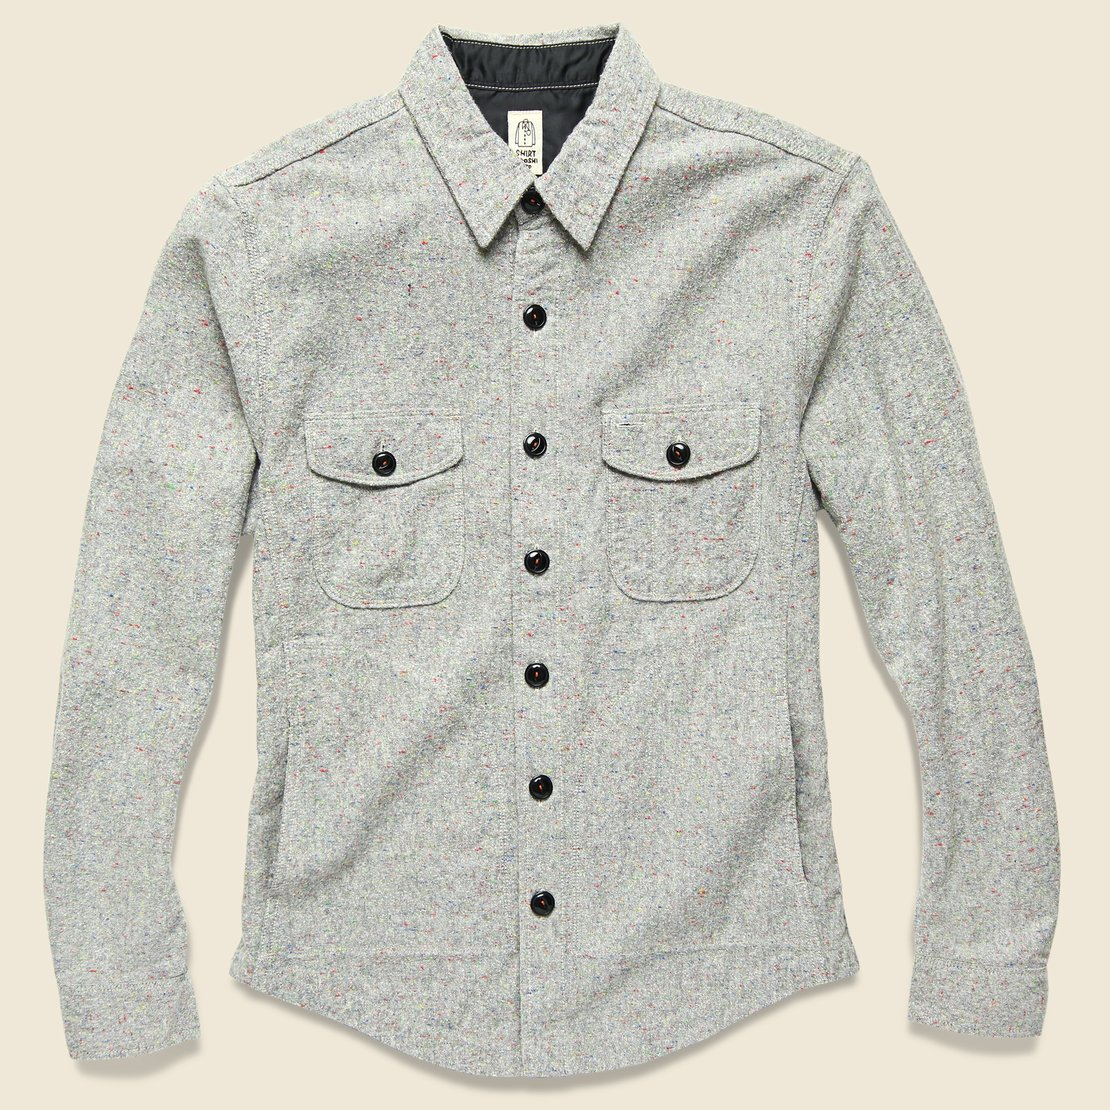 KATO Speckle Overshirt - Grey